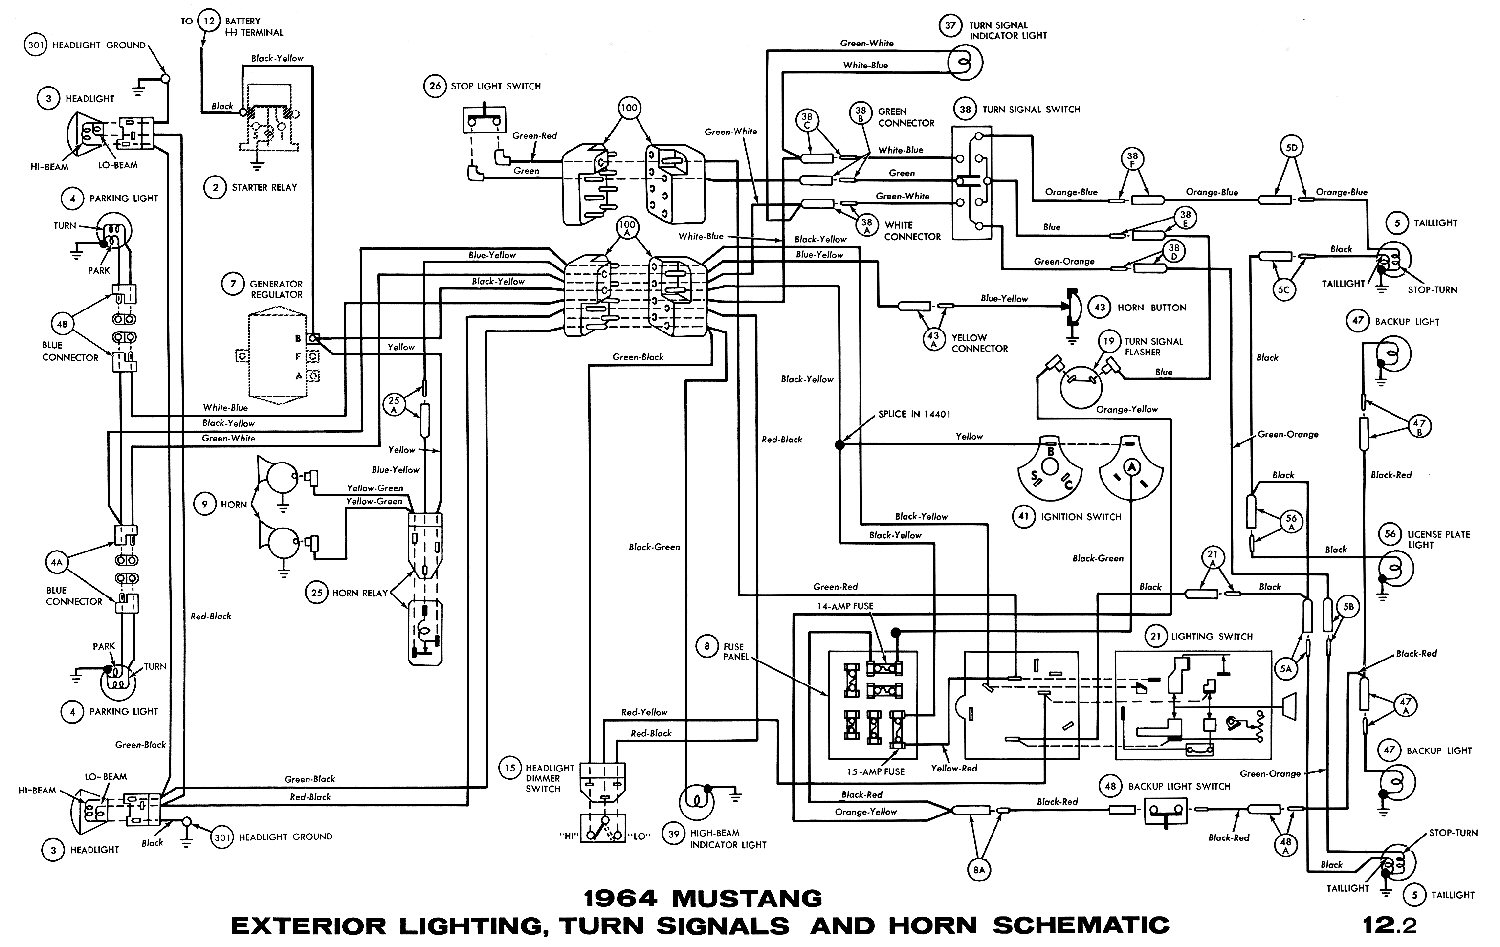 1964i 1969 mustang wiring diagram 1969 ranchero wiring diagram \u2022 wiring 1969 ford mustang ignition wiring diagram at n-0.co